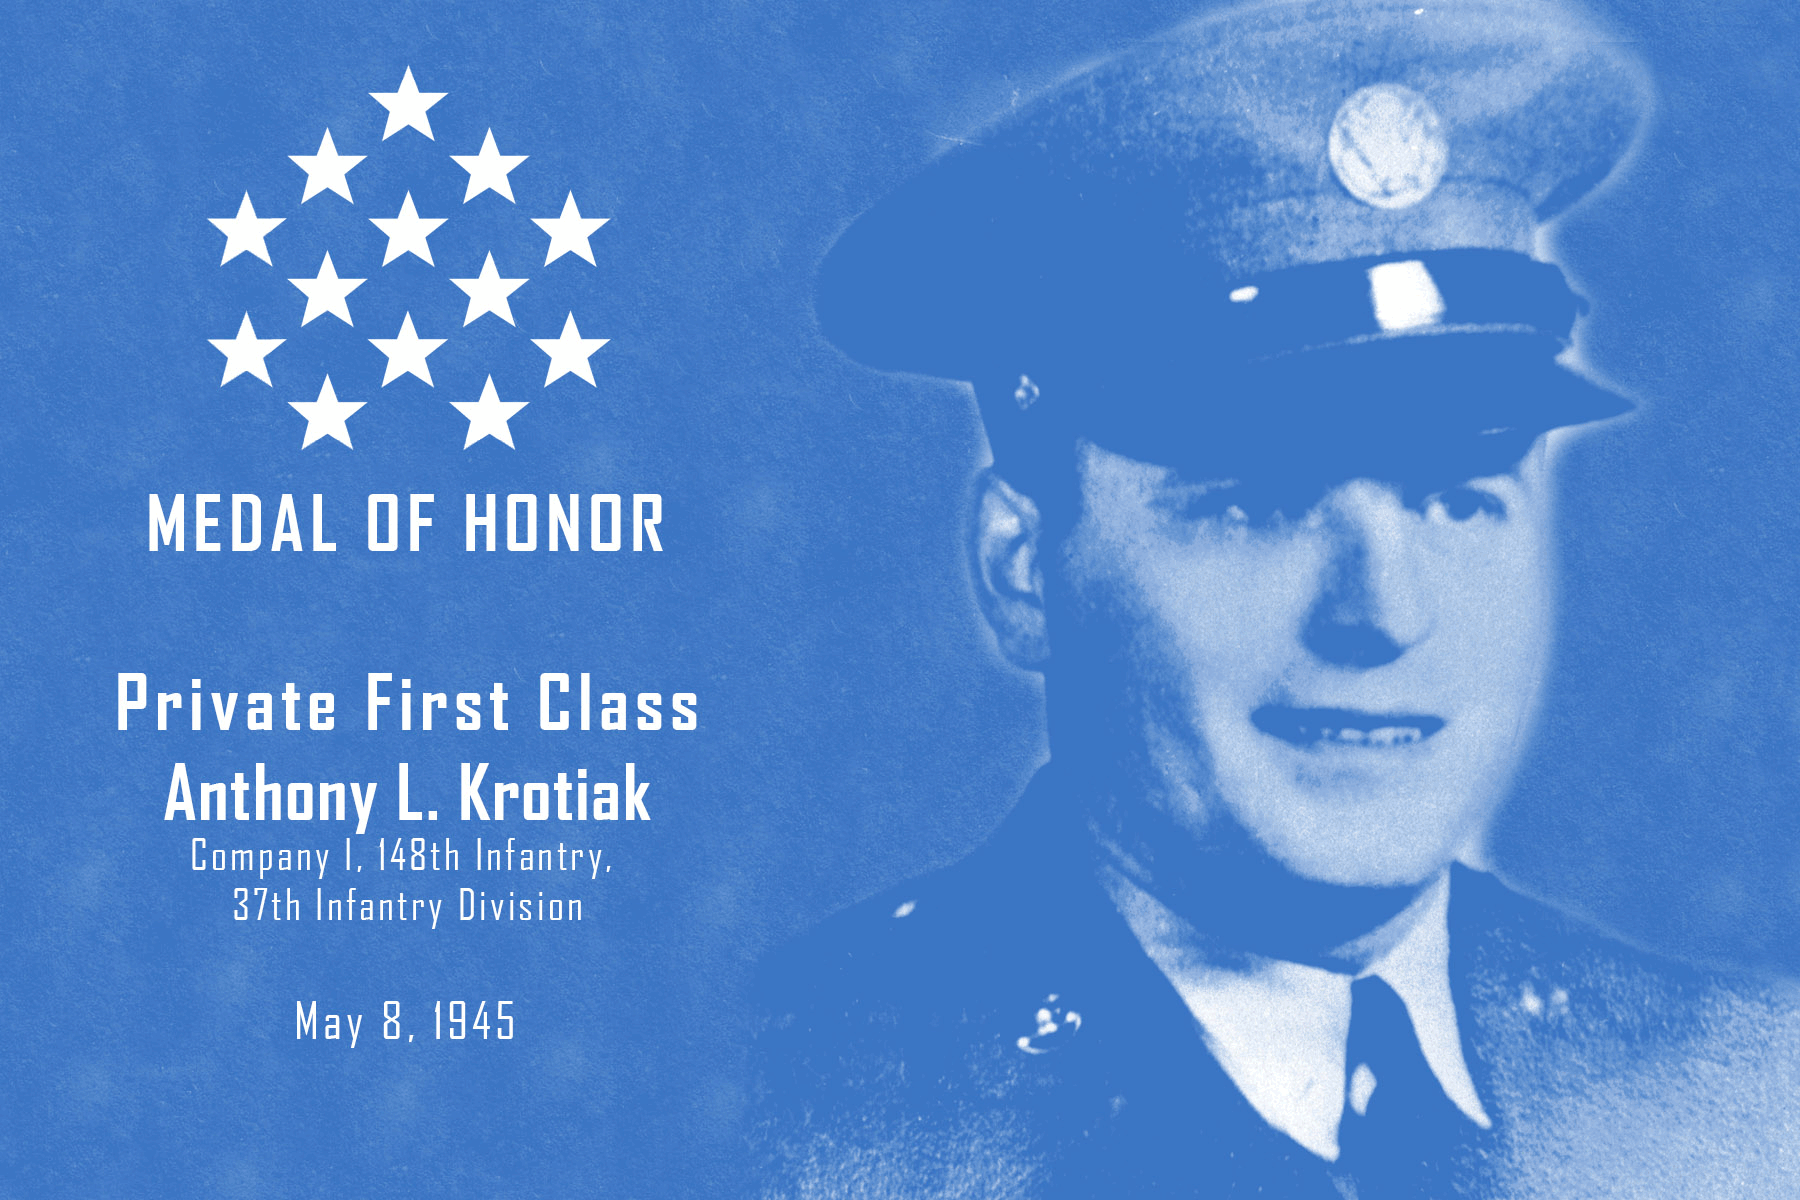 Graphic features image of Pfc. Anthony Krotiak; READS: MEDAL OF HONOR, Private First Class Anthony L. Krotiak, Company I, 148th  Infantry, 37th Infantry Division, May 8, 1945